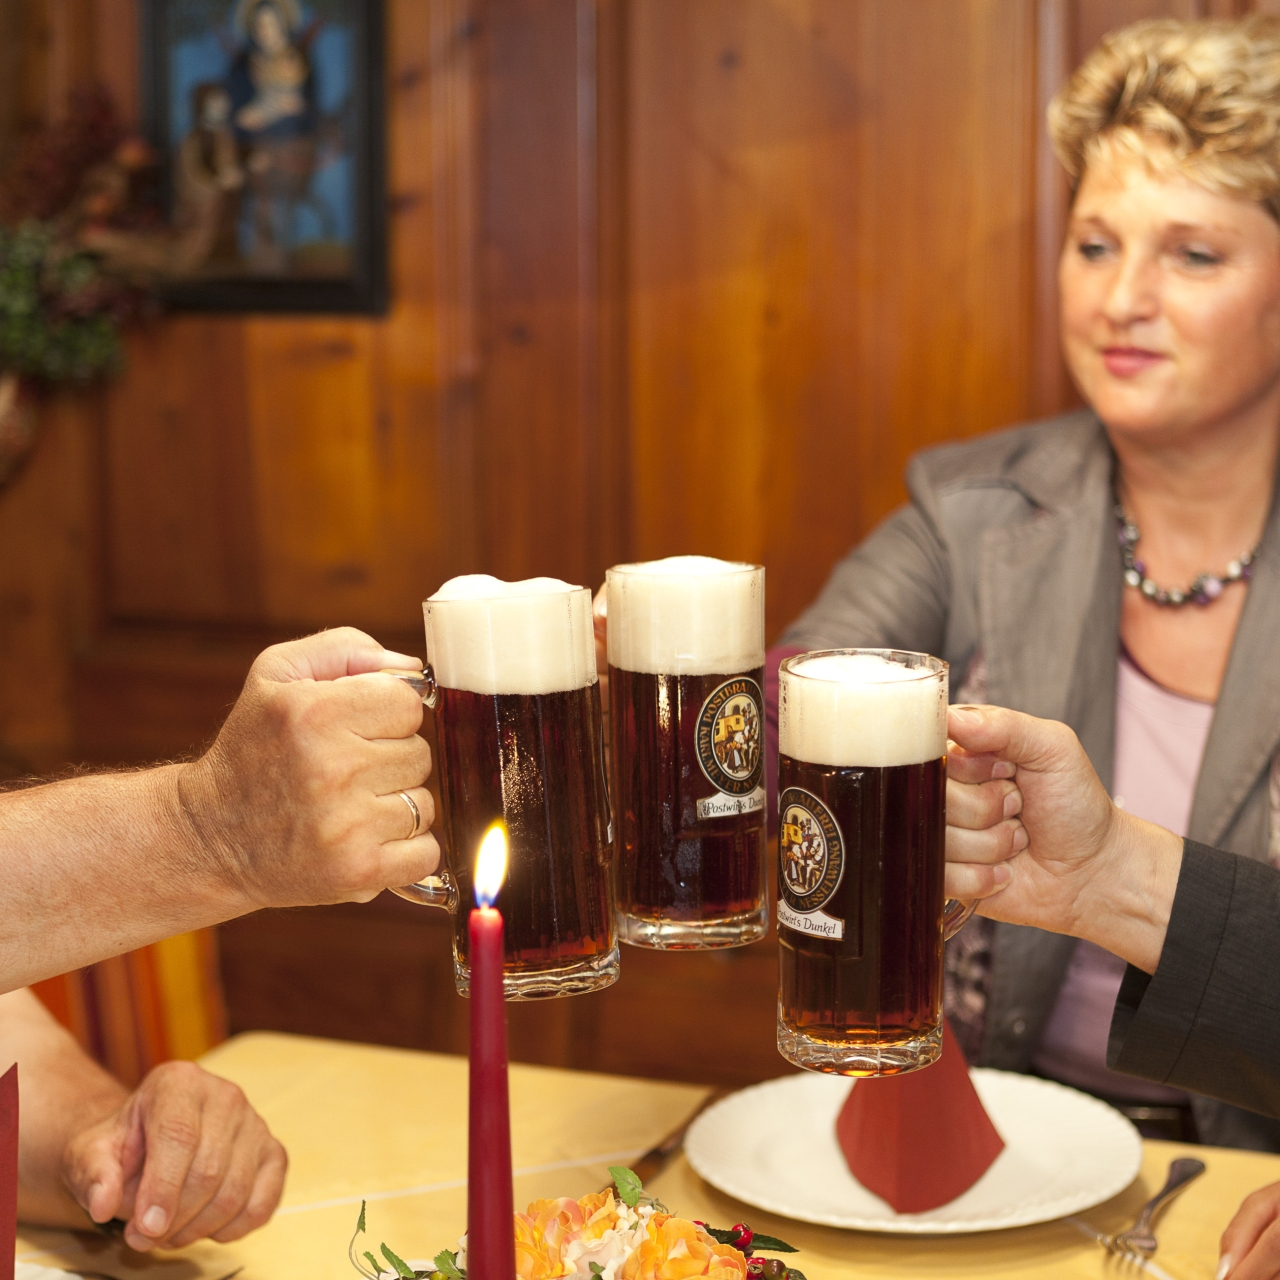 Brauerei Gasthof Hotel Post Bavaria At Hrs With Free Services